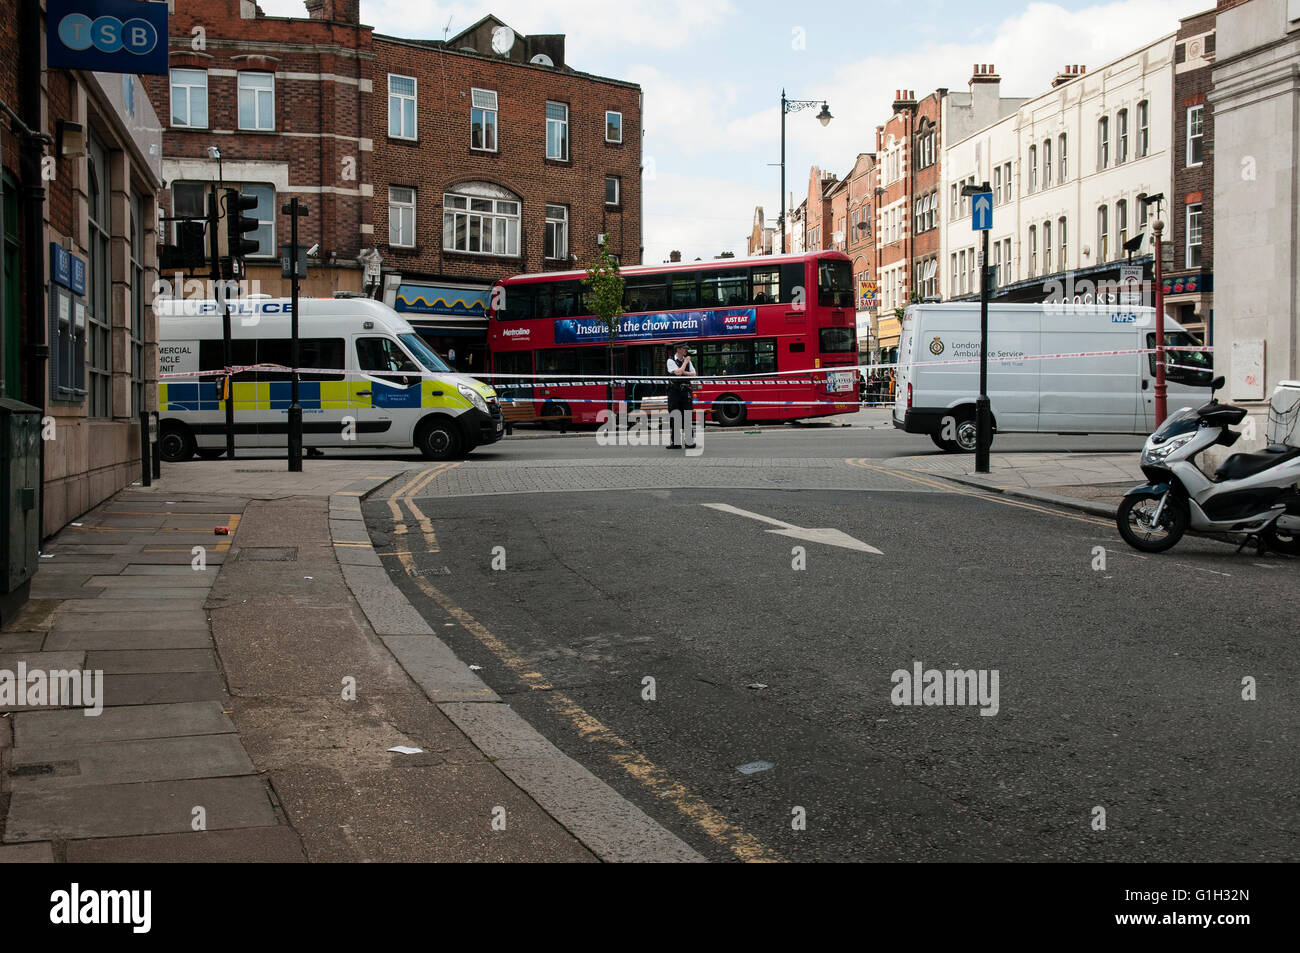 London, UK. 15th May, 2016. A double decker bus from the line 18, crashes into shop in Harlesden High Street. At - Stock Image